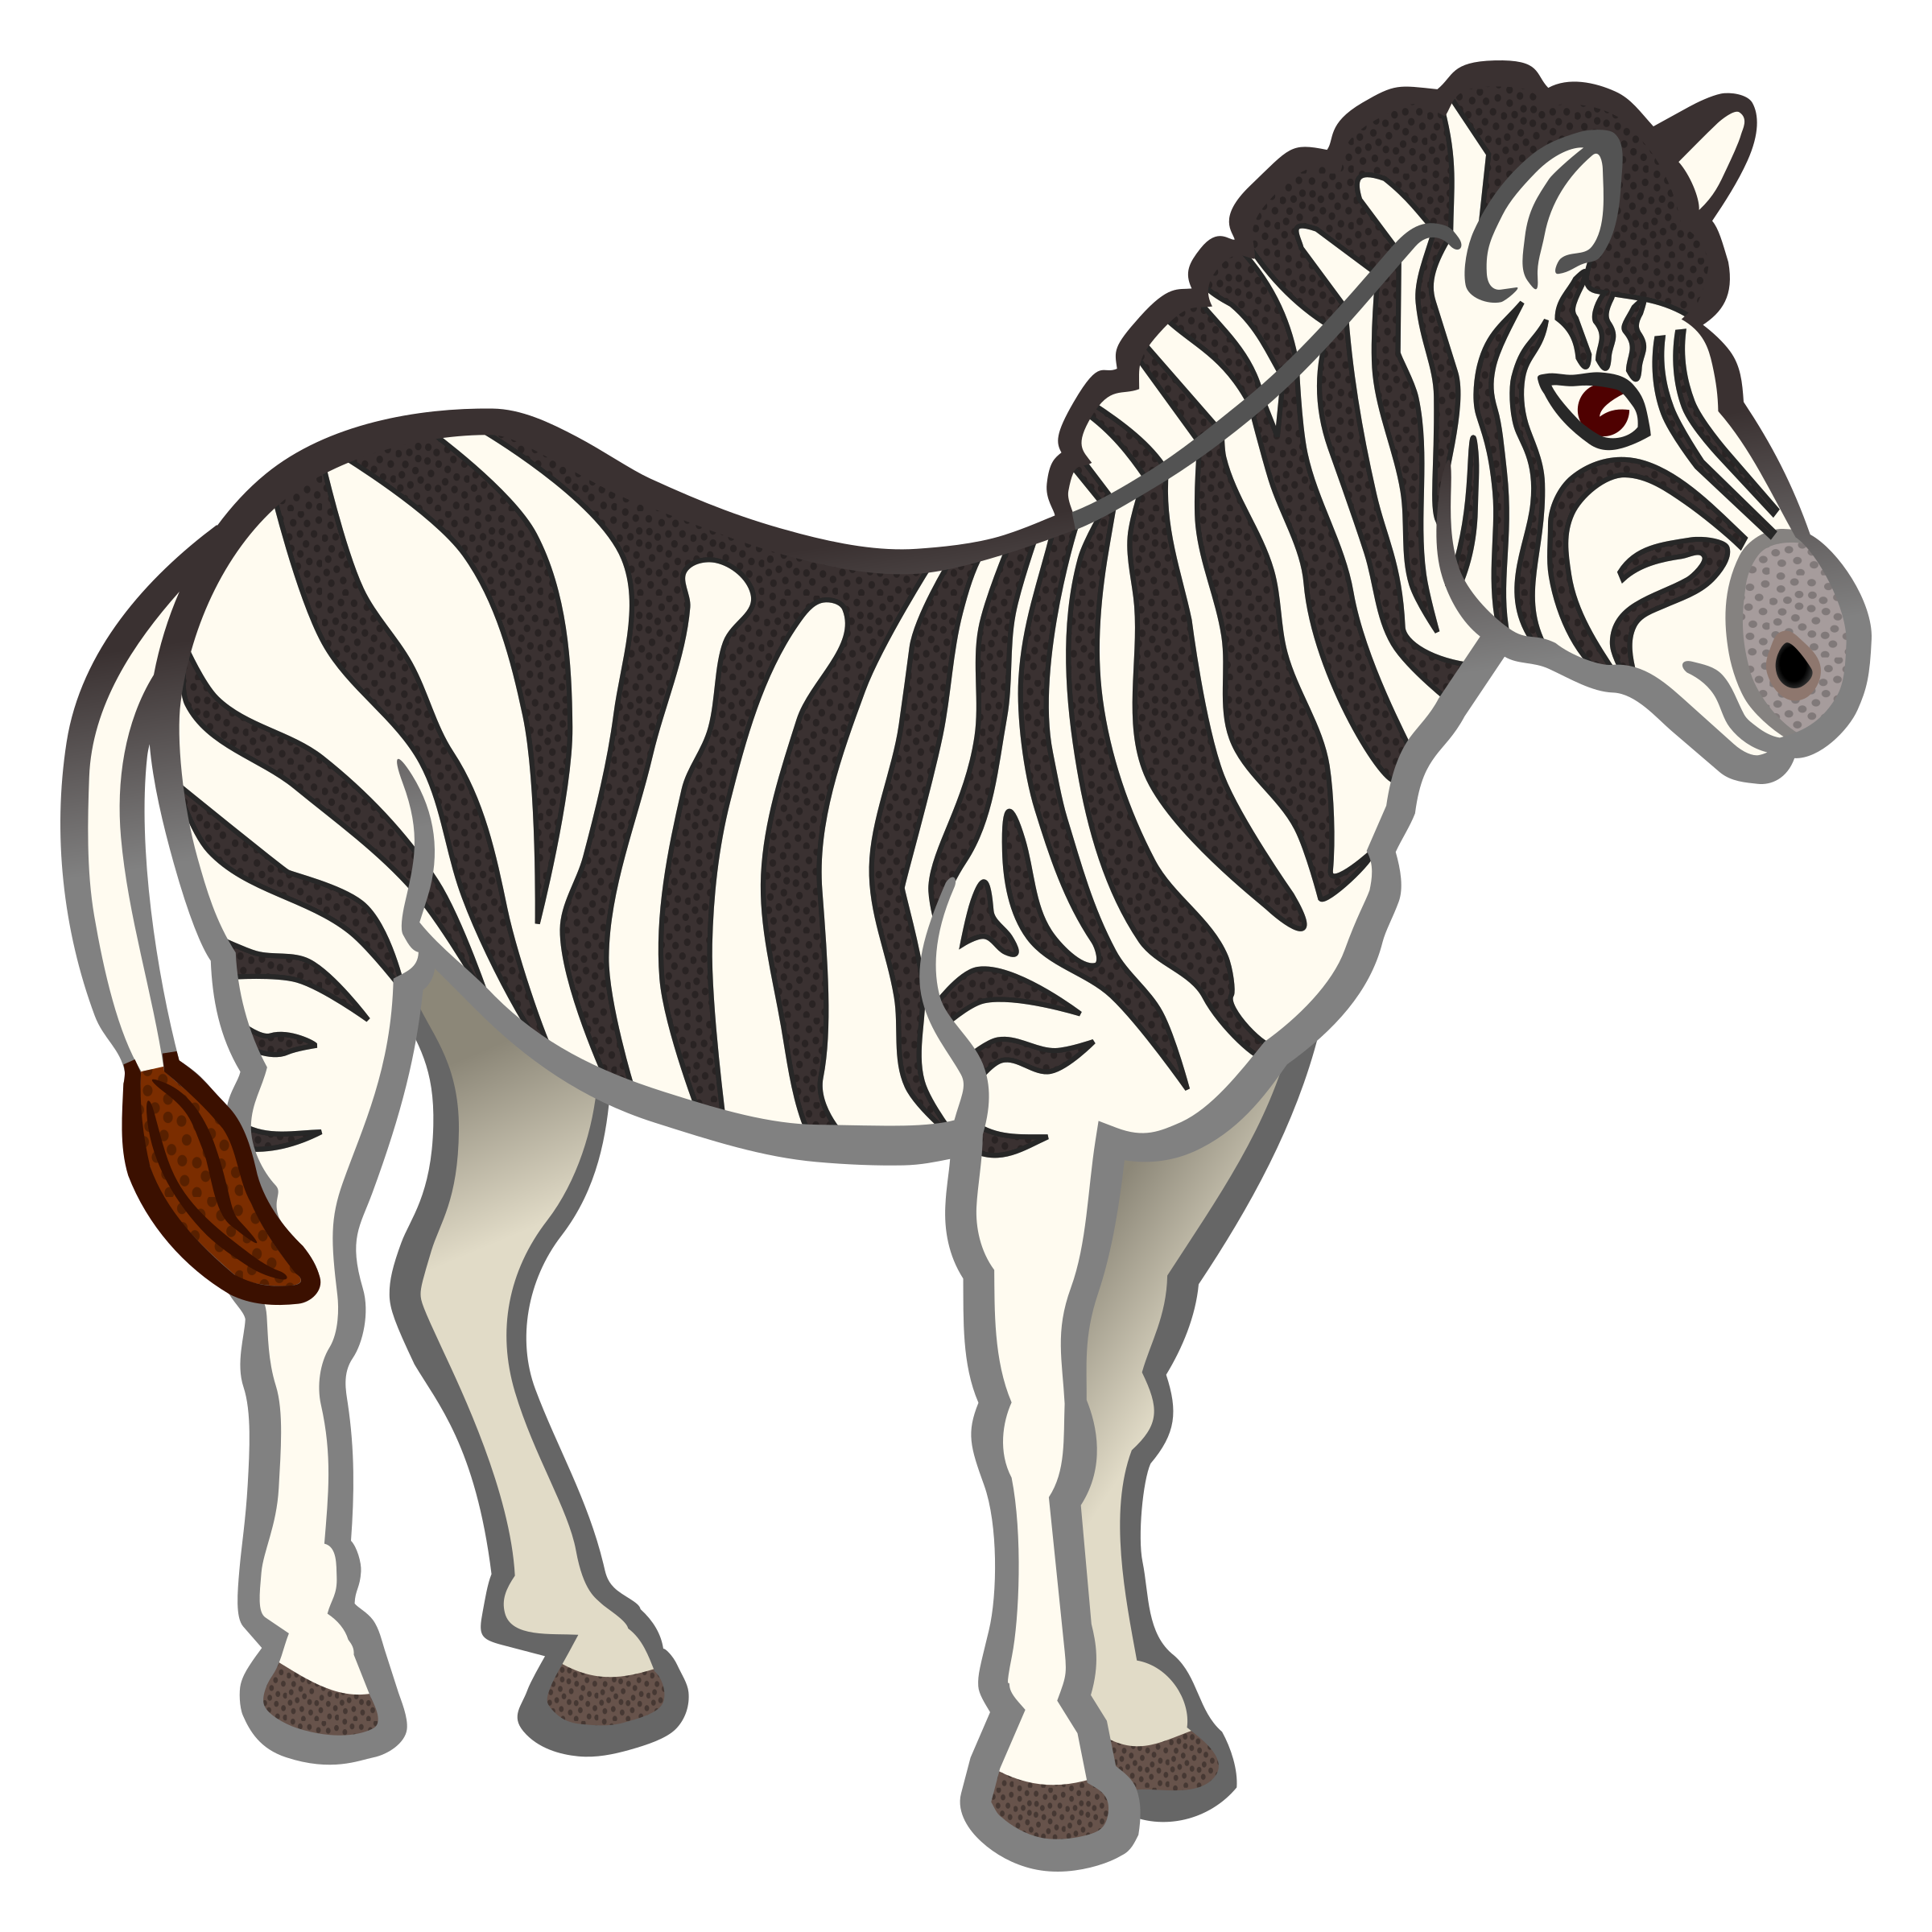 Coloured icons png free. Zebra clipart purple zebra picture free library